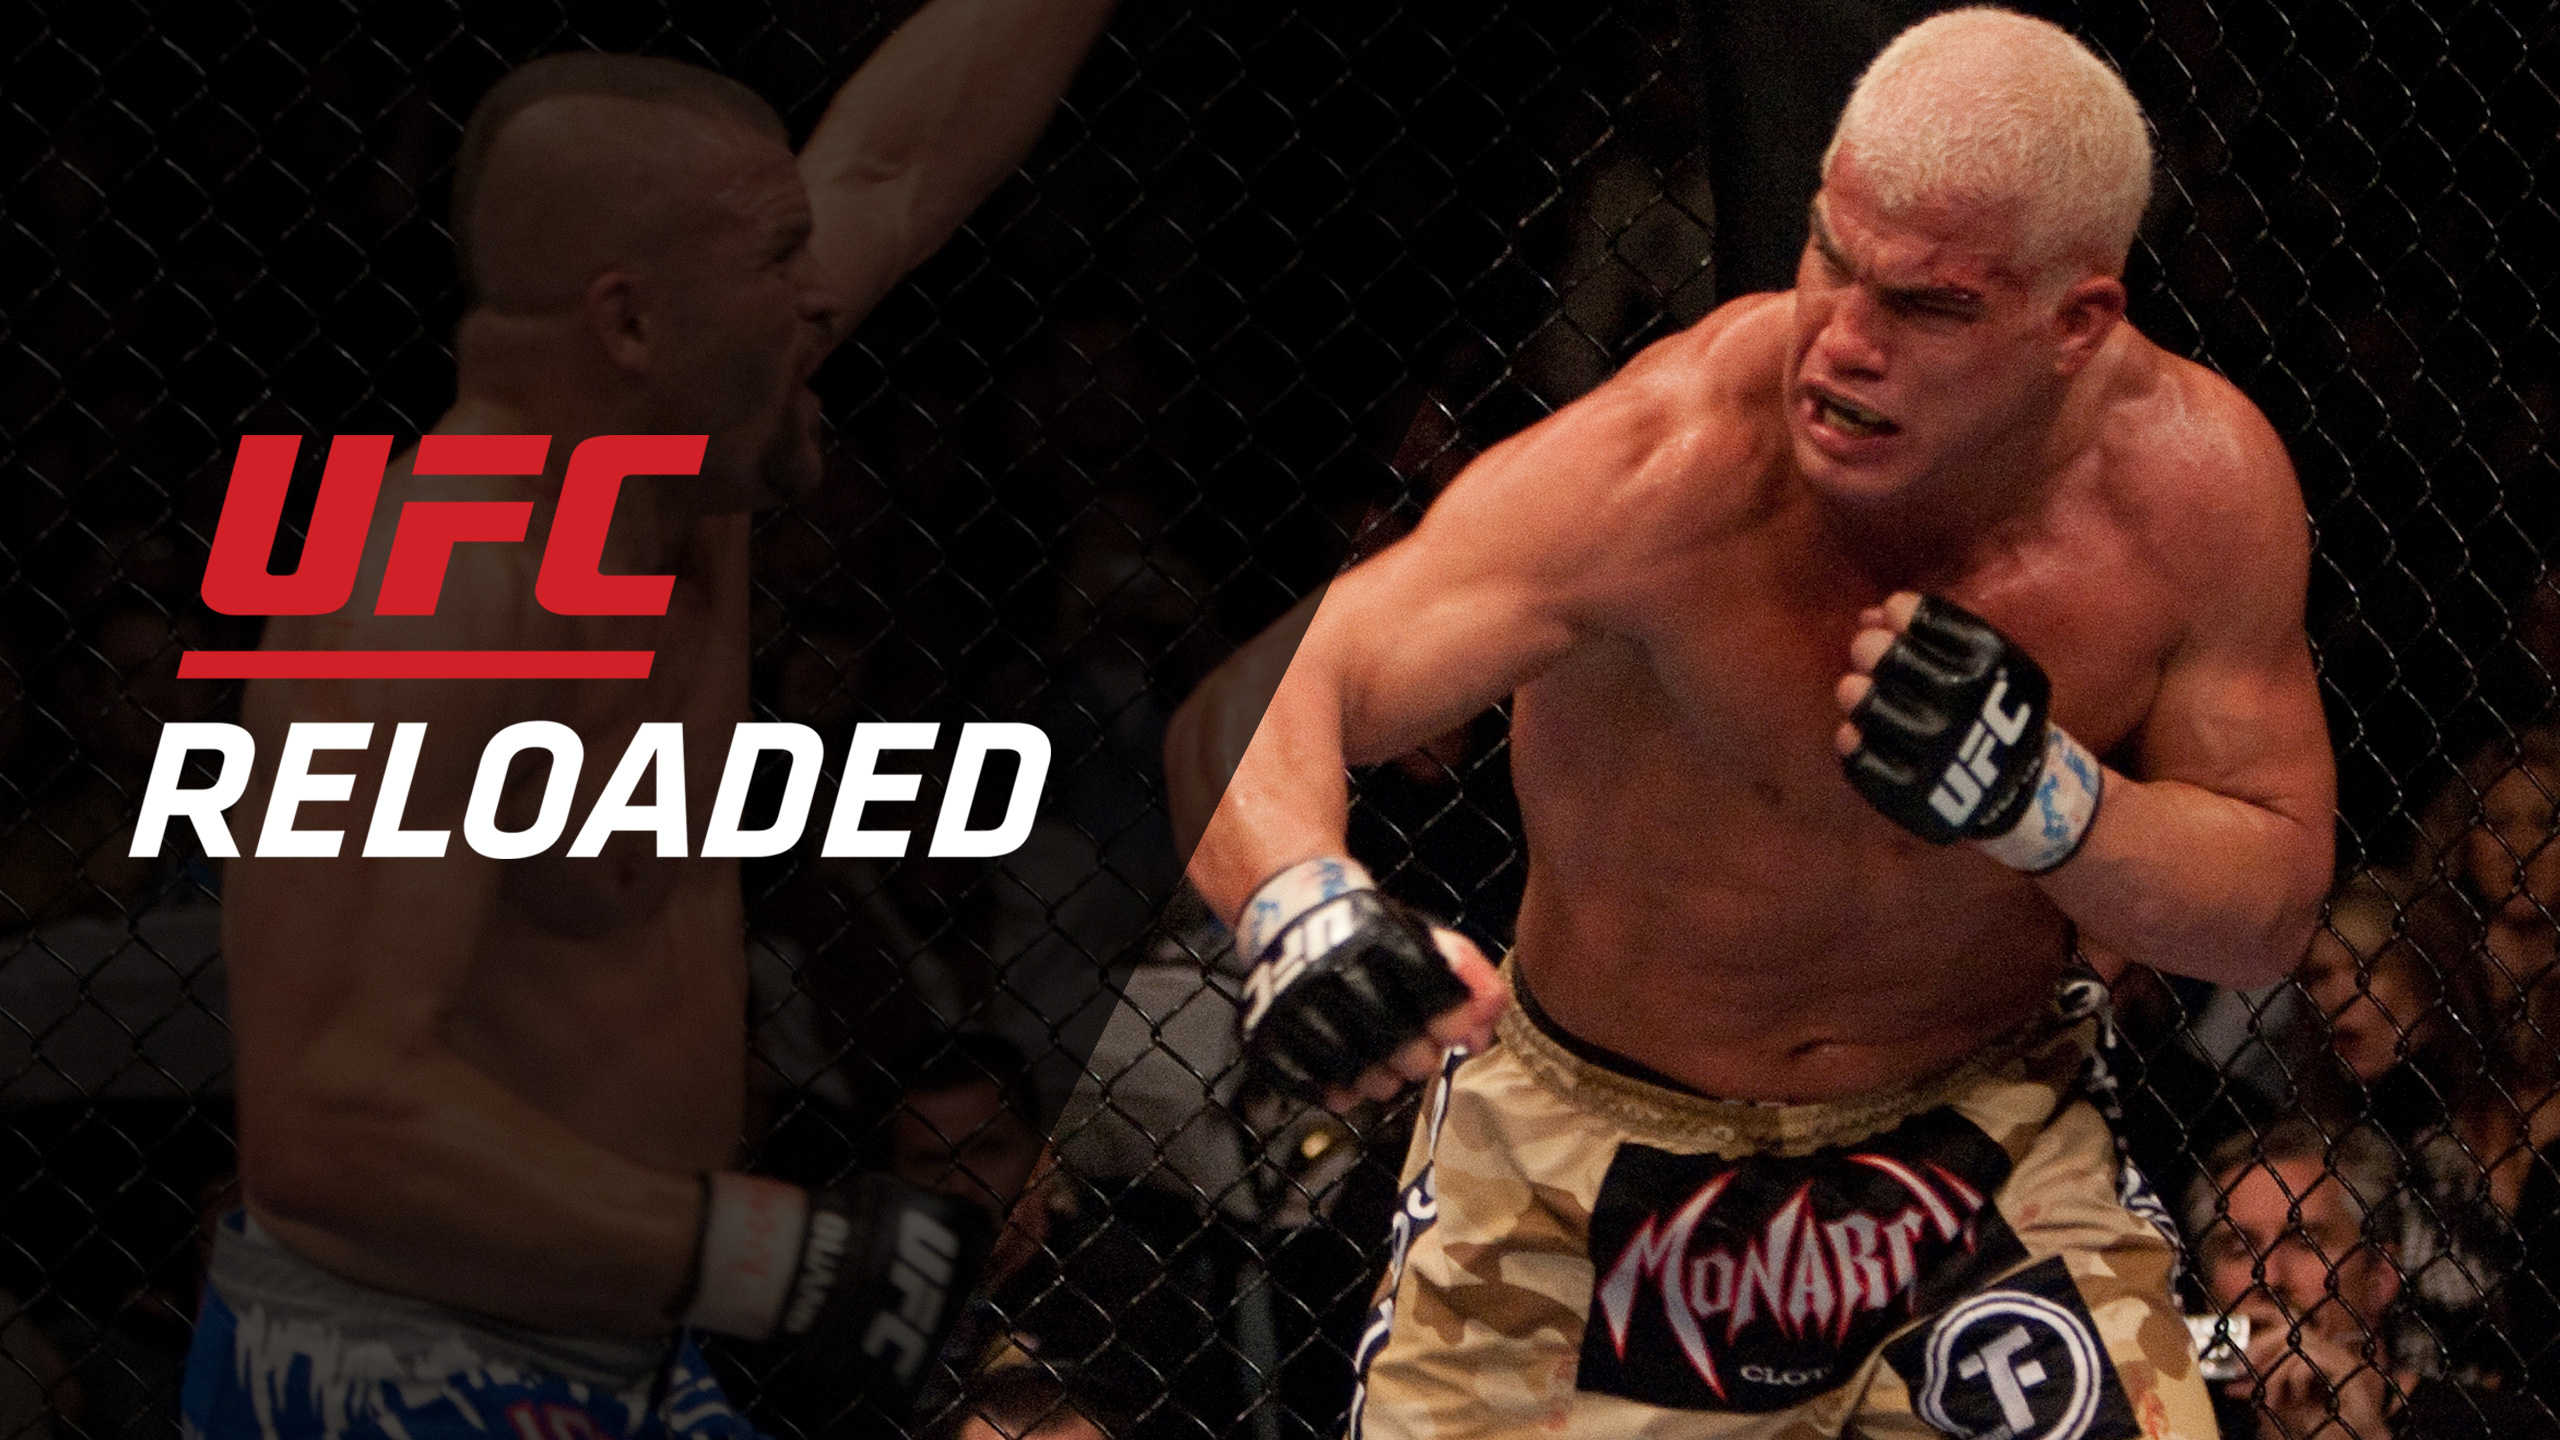 UFC Reloaded: 66: Liddell vs. Ortiz 2